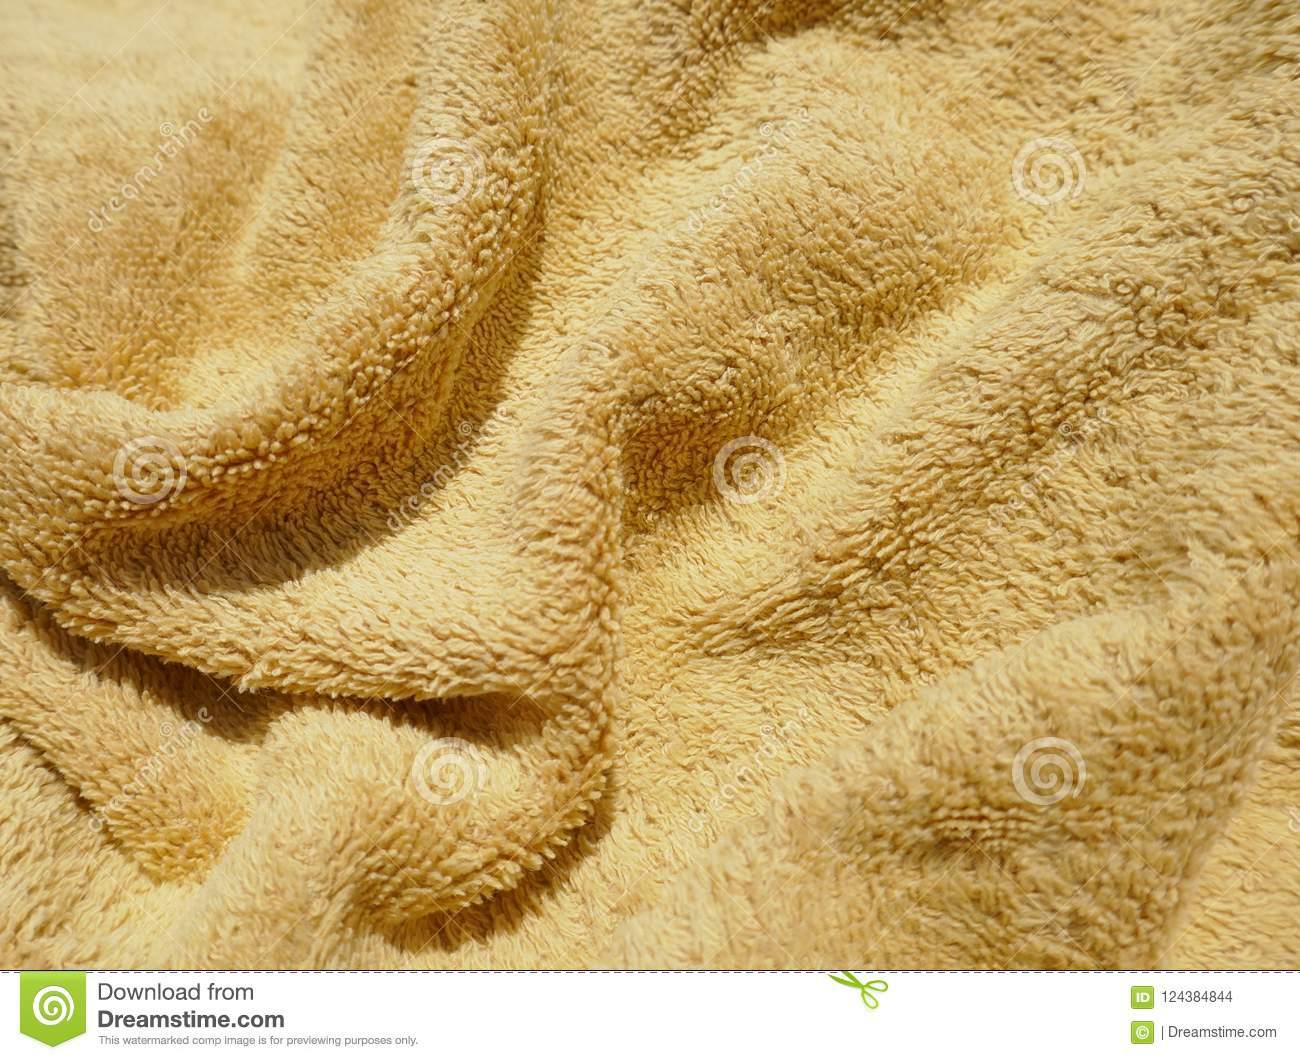 Golden Brown Background Of Soft, Fluffy, Terry Cloth Or